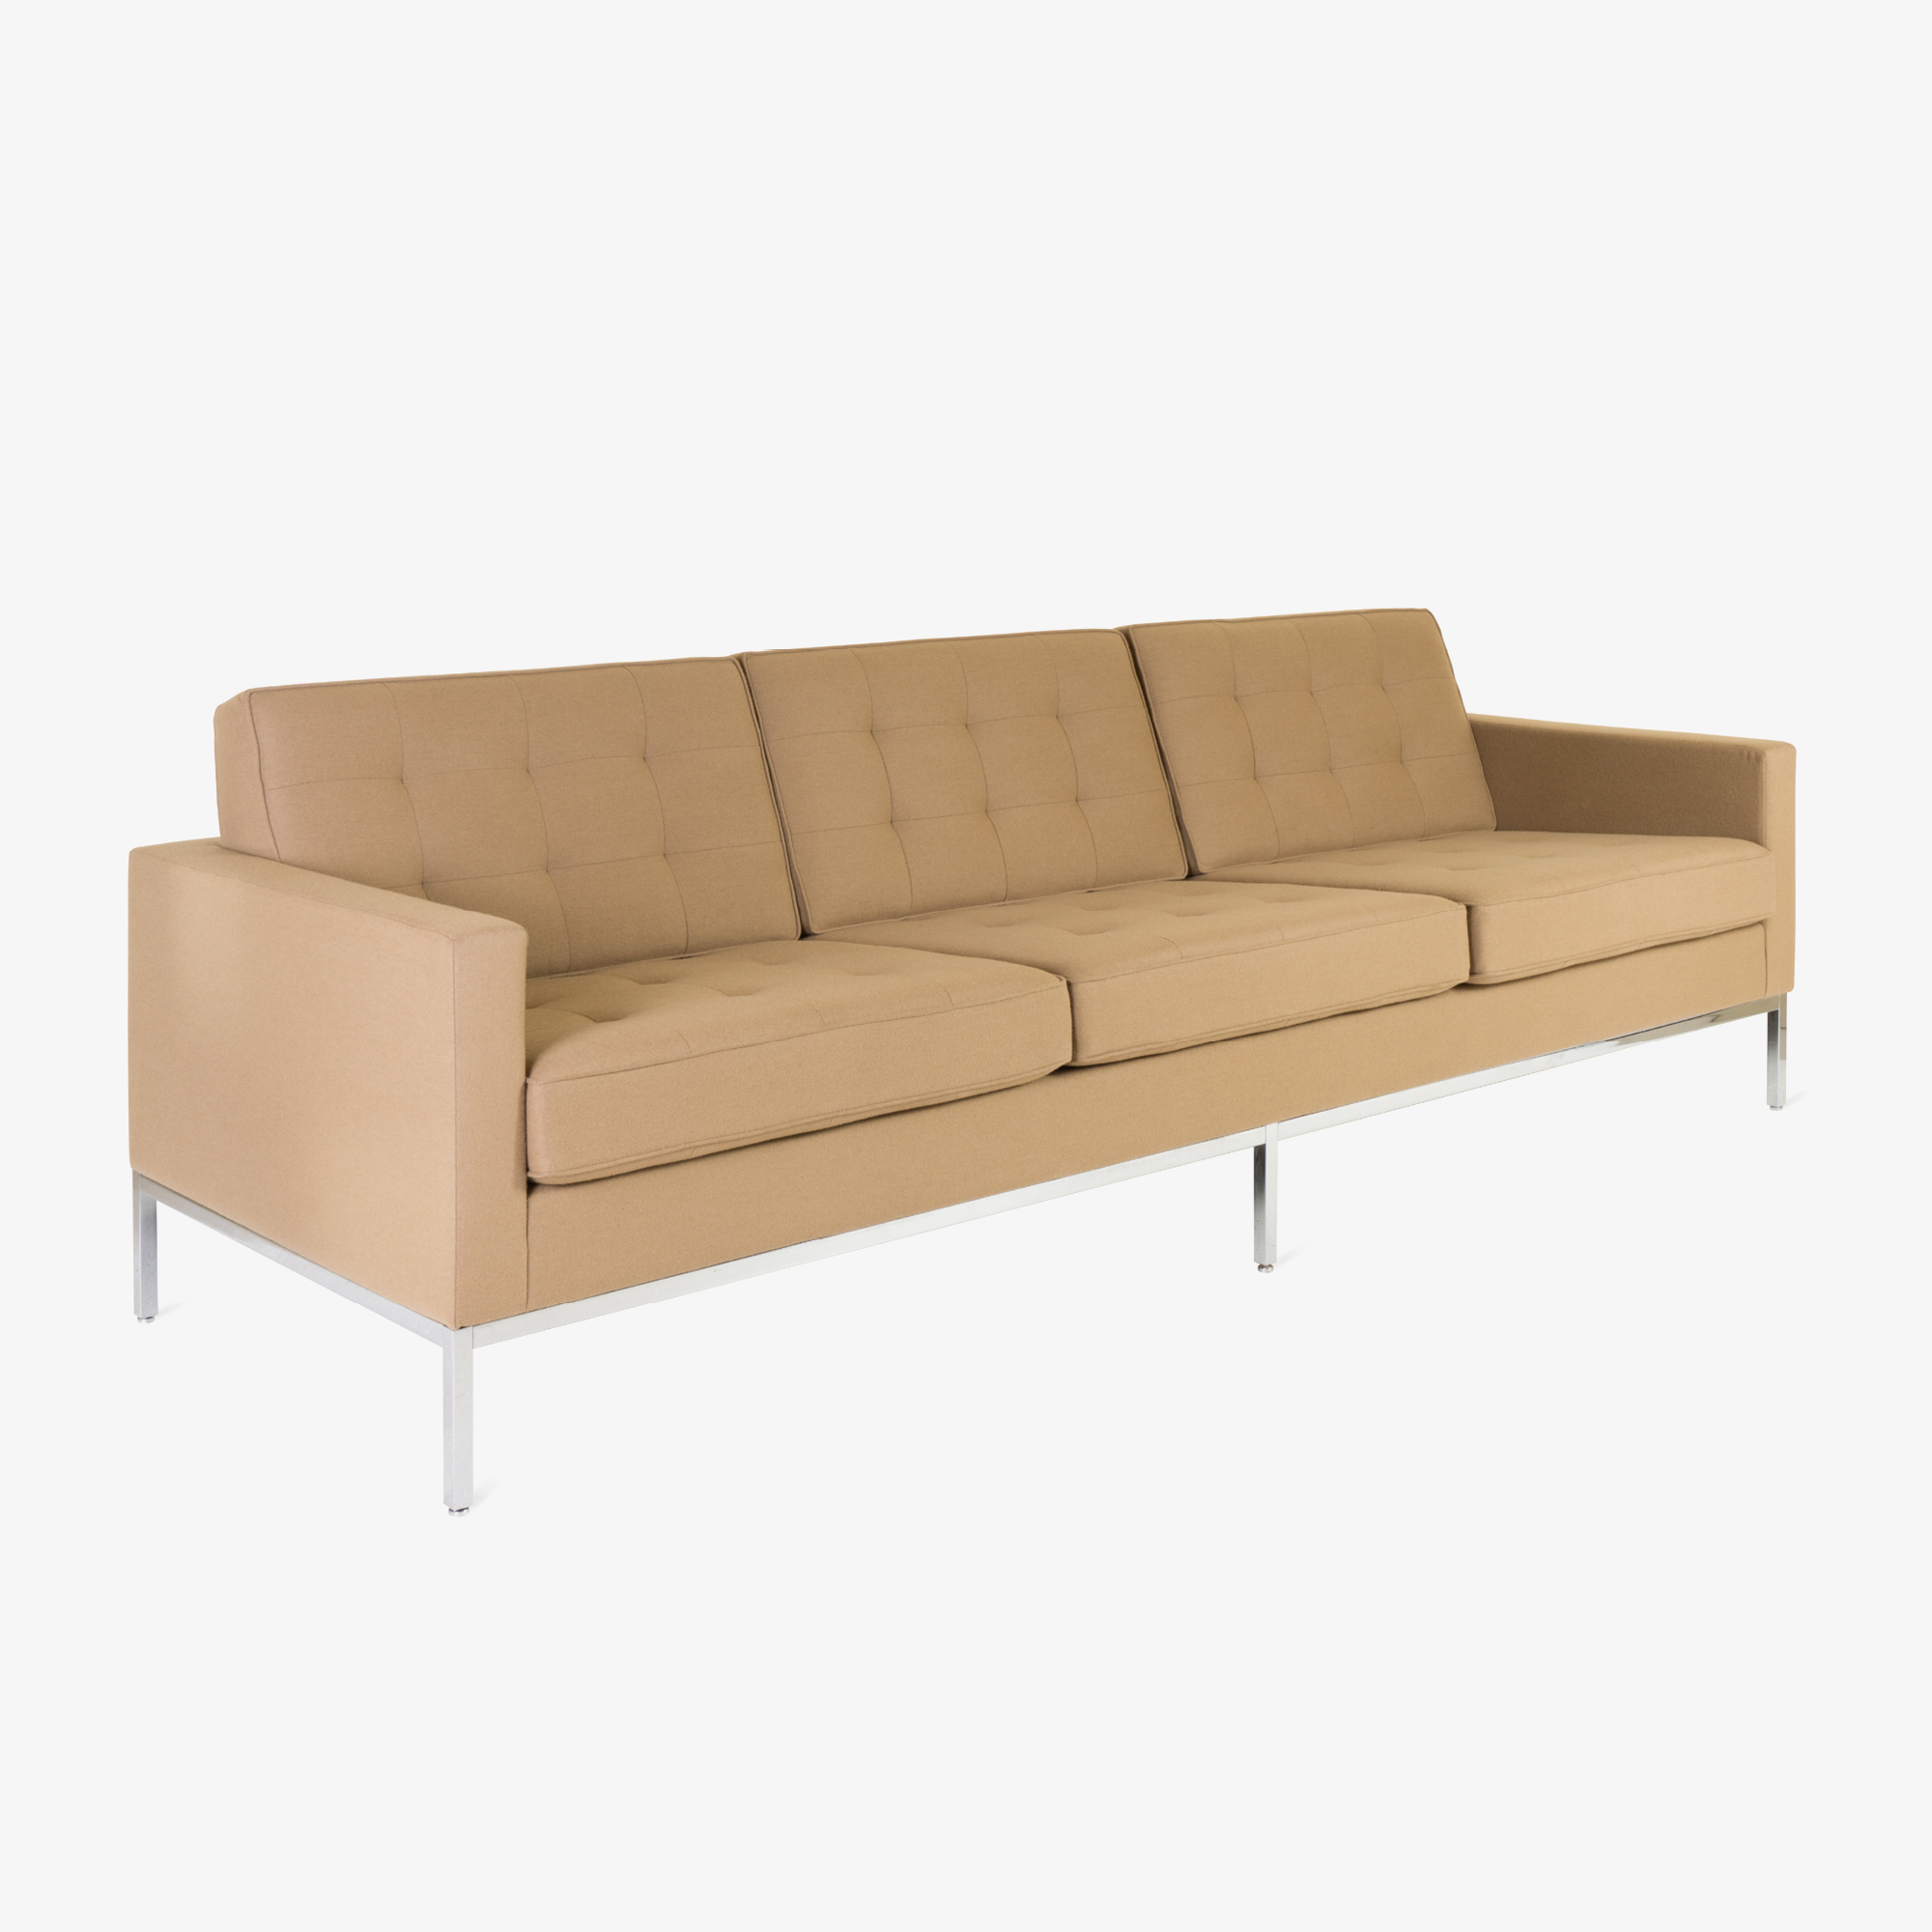 Florence Knoll Sofa in Camel Wool Flannel